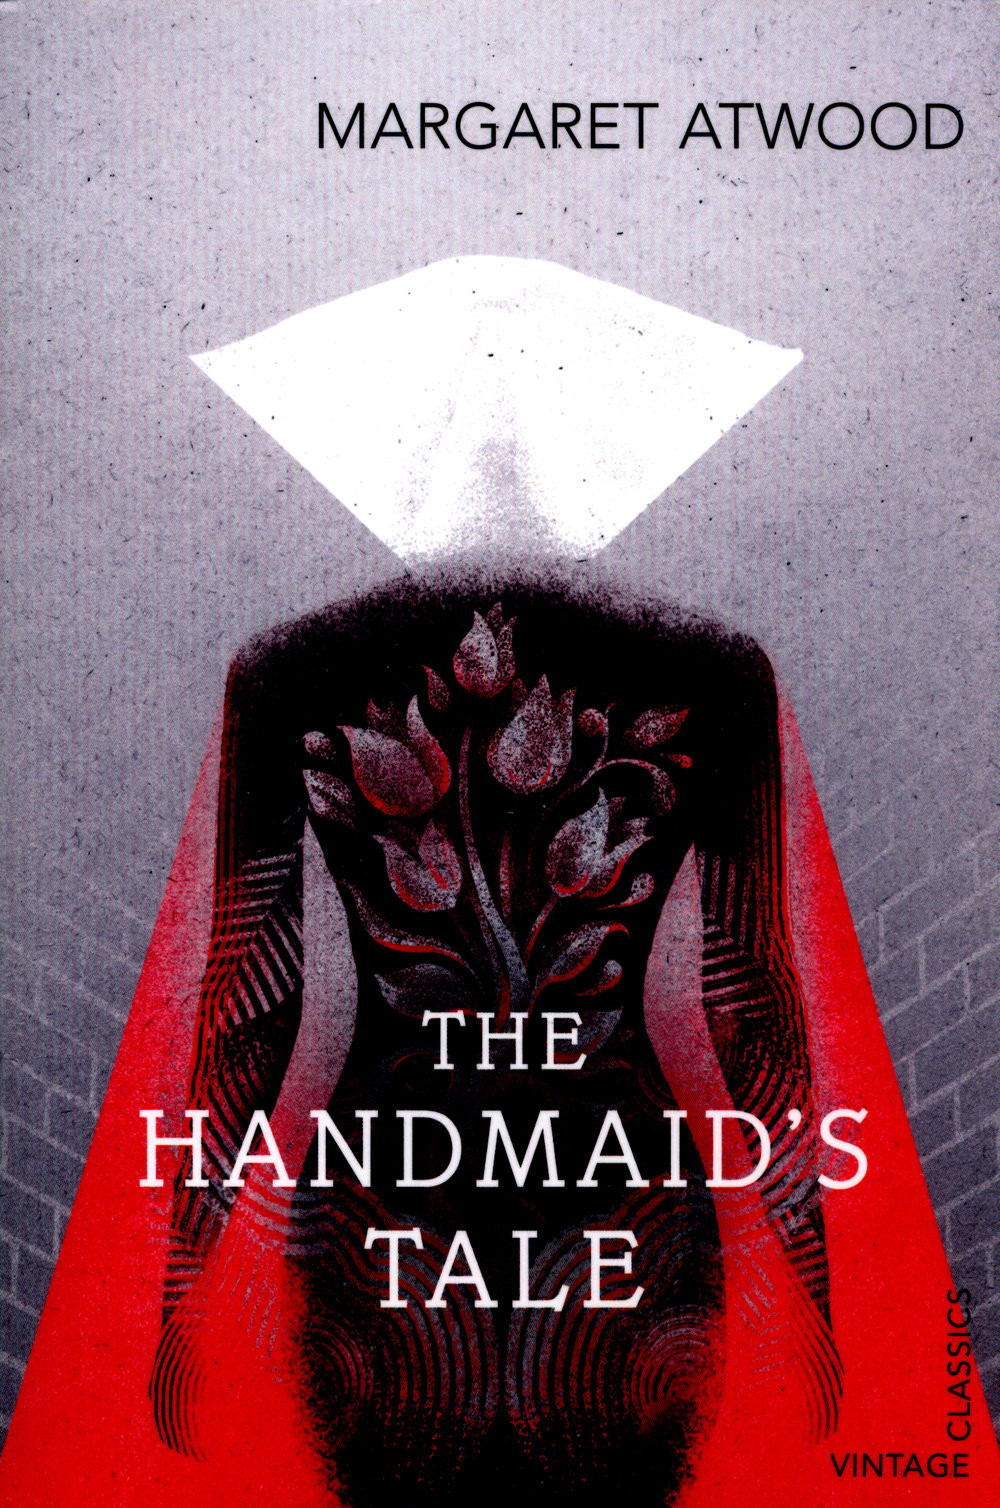 the handmaid's tale  - Both in print and on screen, this book/show has been a wild ride. I finished reading it in a couple of days, completely drawn in by the dystopian extension of backlash to modern female movements and the intense objectification and caste system created. While the Hulu show changes many things from the book, the addition of more drama and beautiful cinema is very captivating.